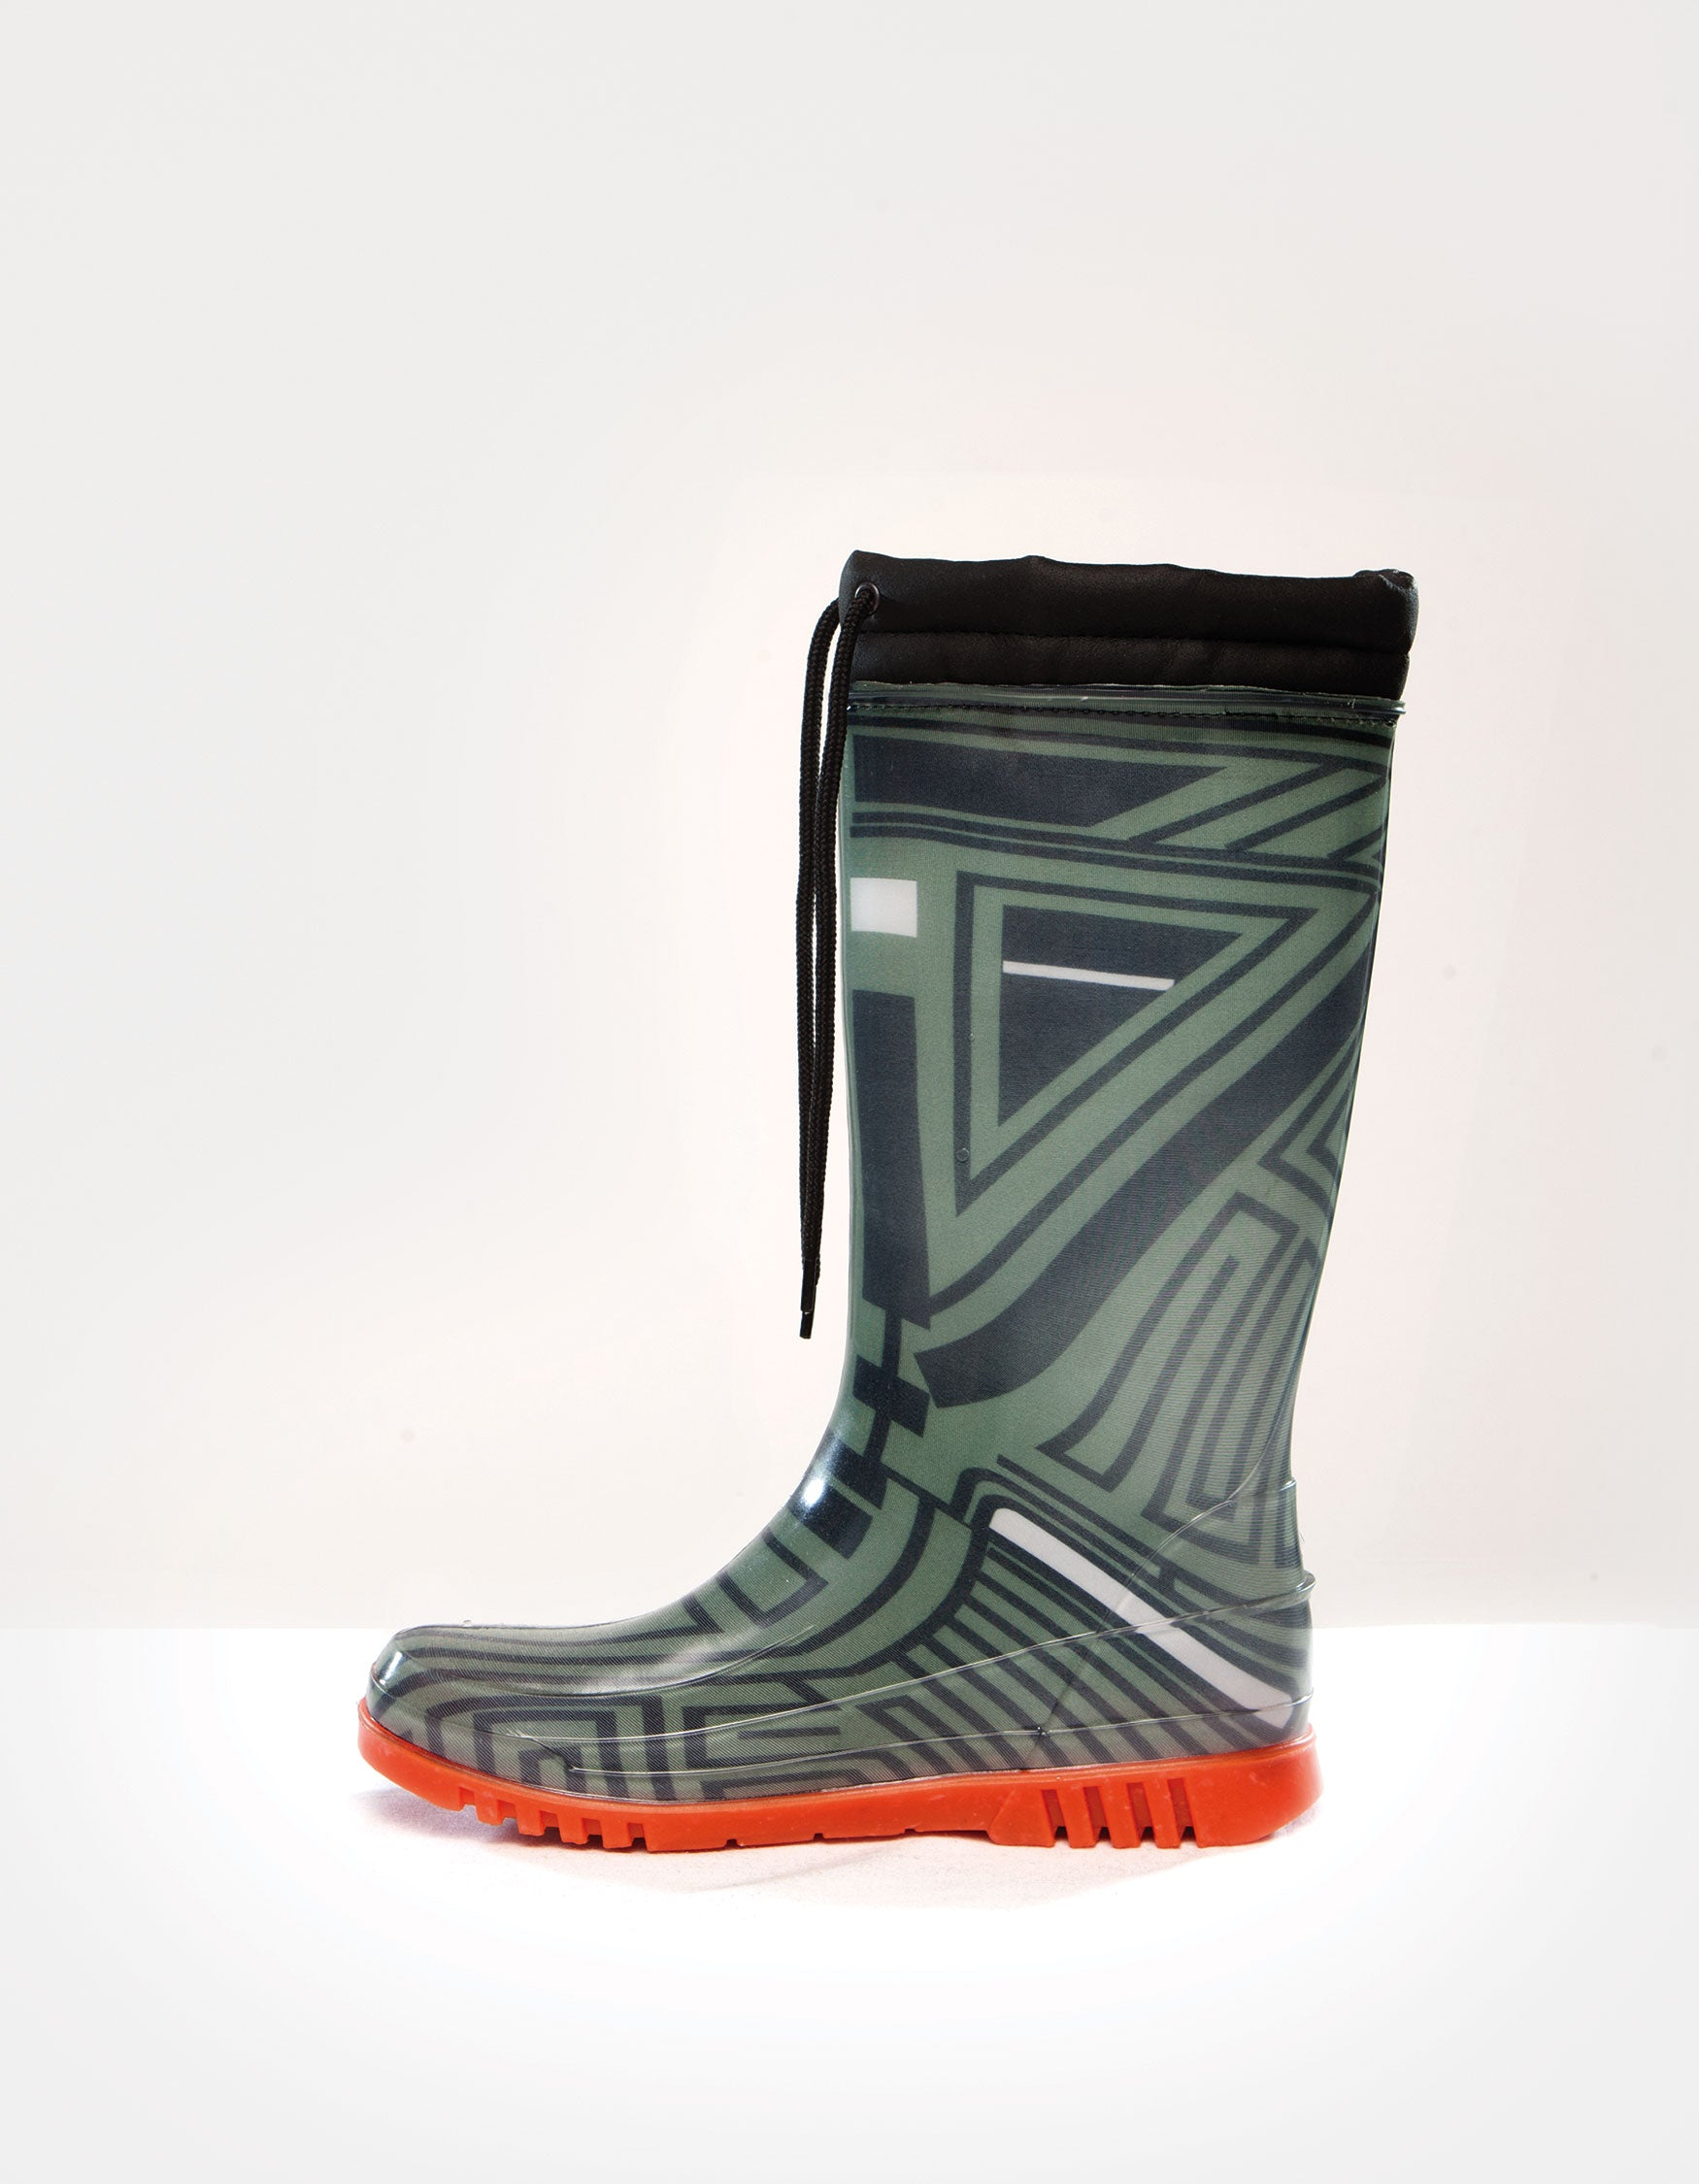 DEMOBAZA RUBBER BOOTS  STRUCTURE GREEN 01 W